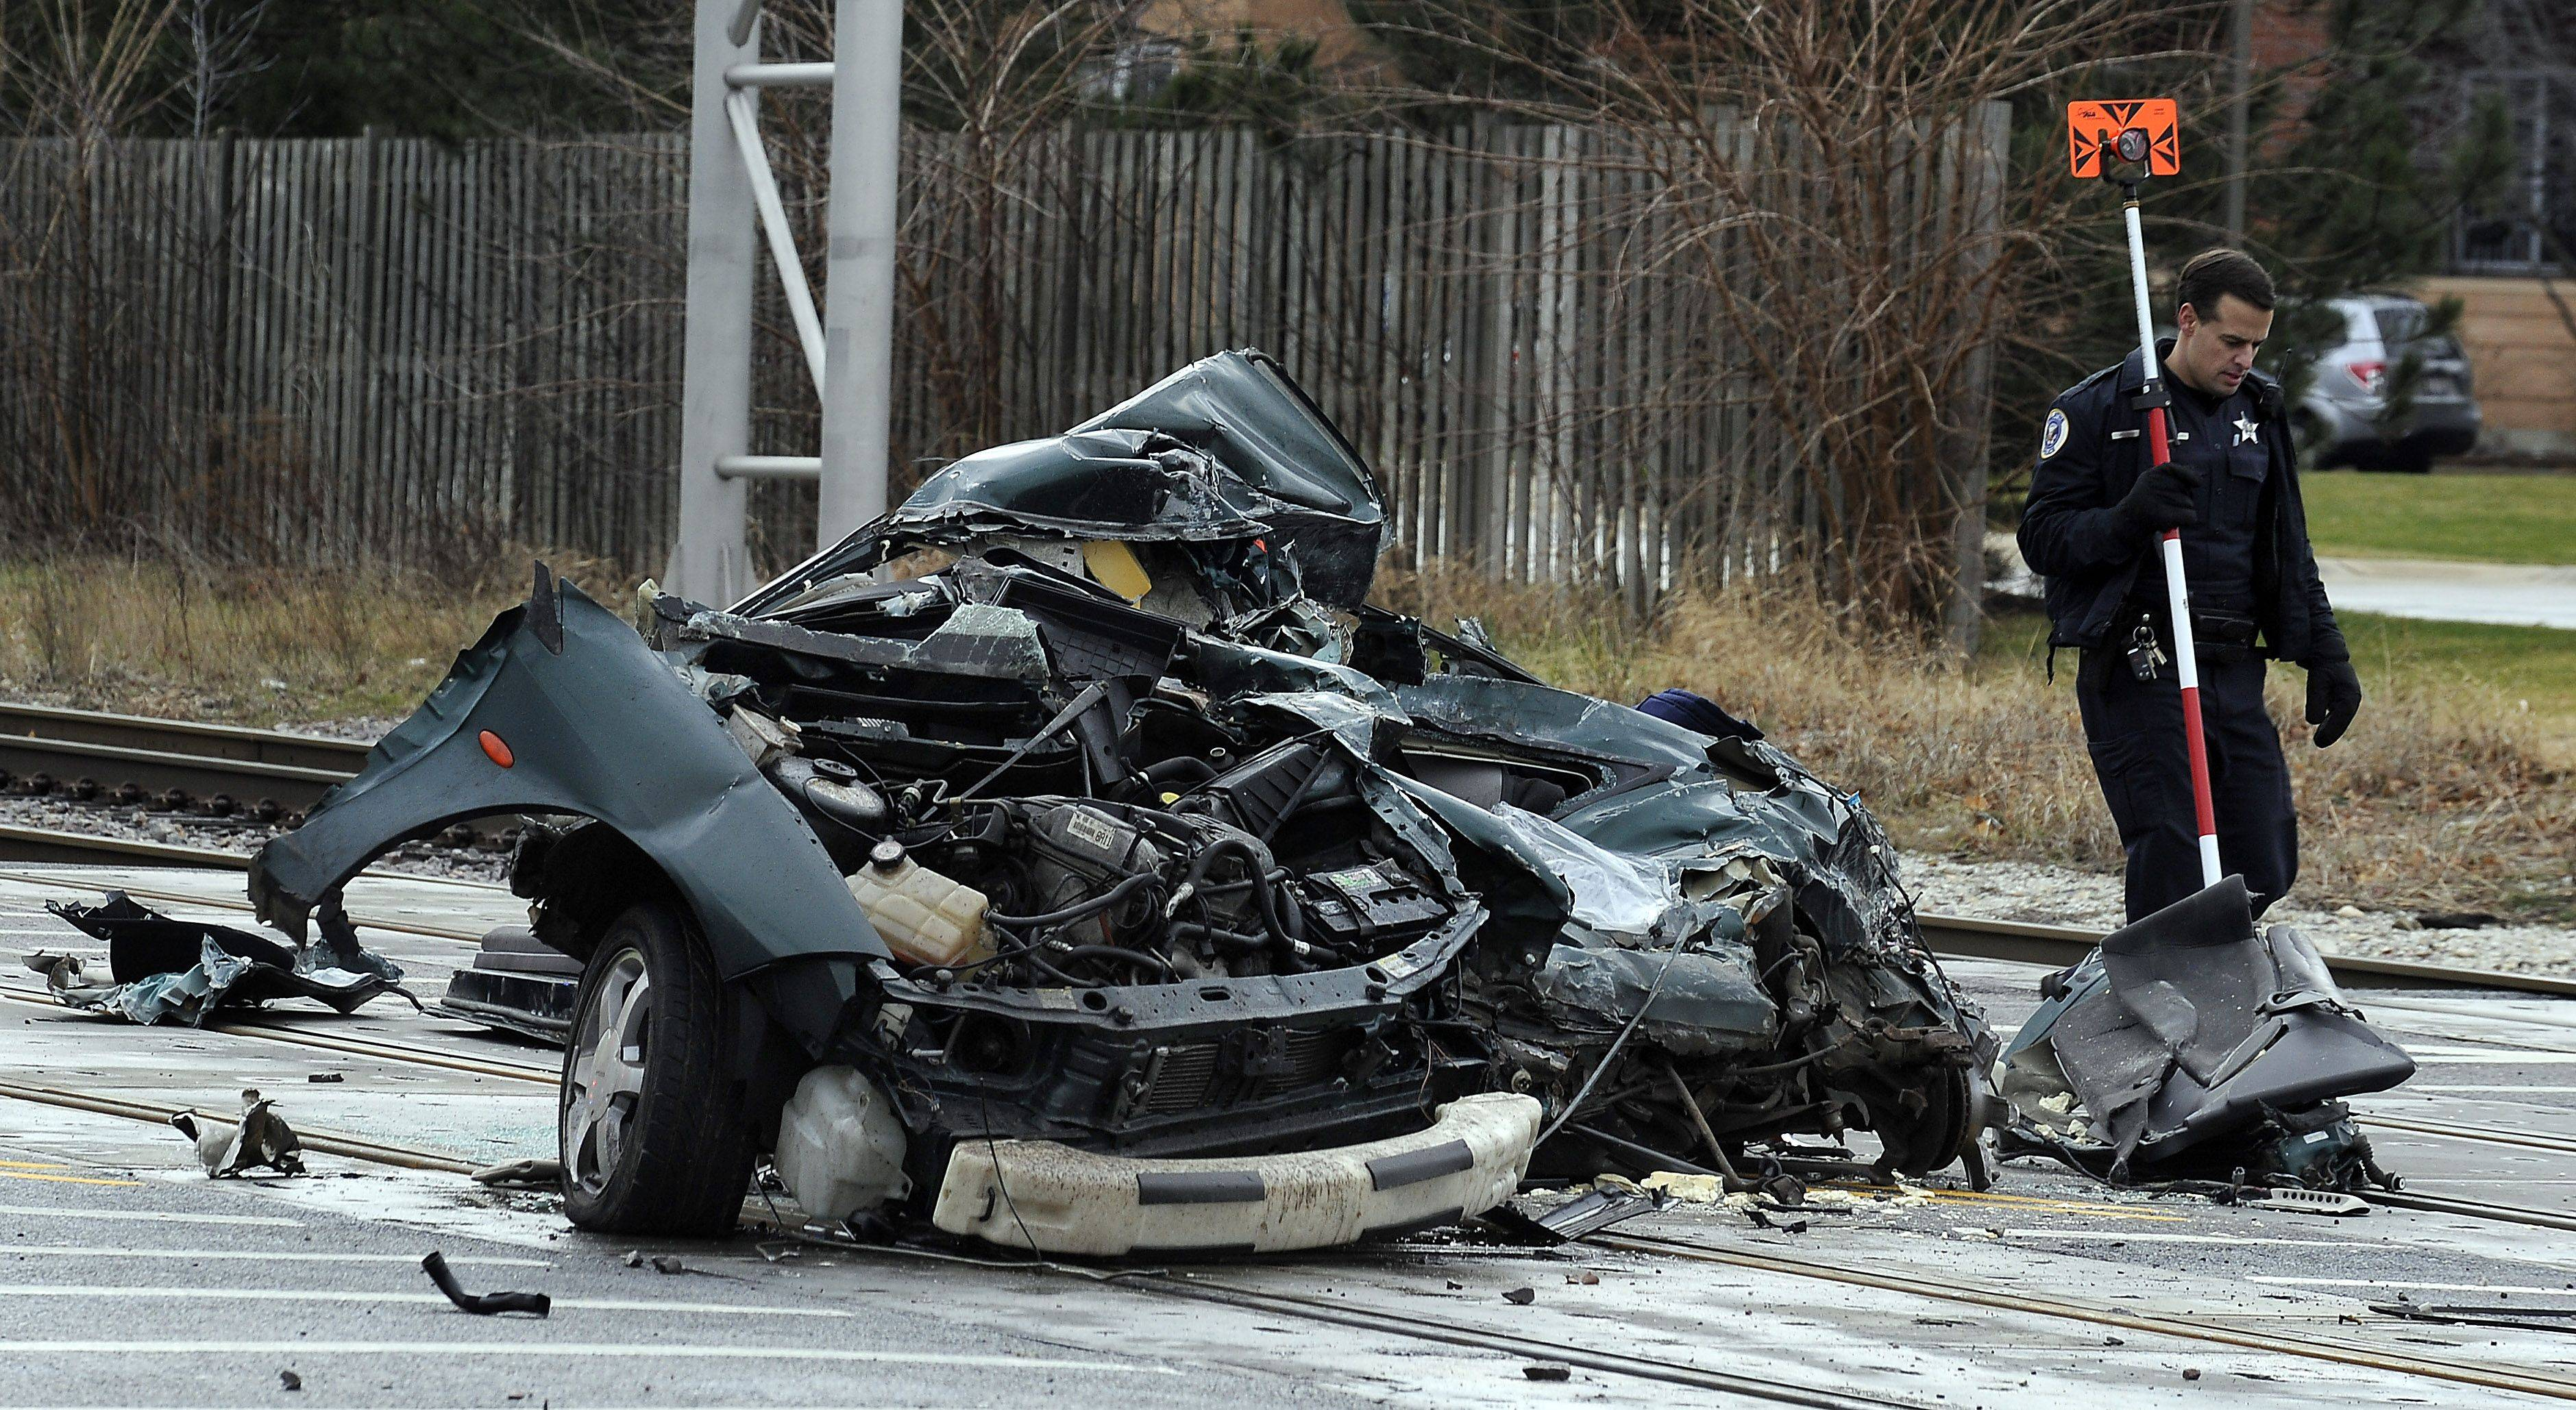 A 1999 Mercury was heavily damaged when it was struck by a train on the Union Pacific Northwest Line at Brockway Street in Palatine about 7:30 Tuesday morning. The impact killed the car's driver, 64-year-old Michael Levgard of Palatine.